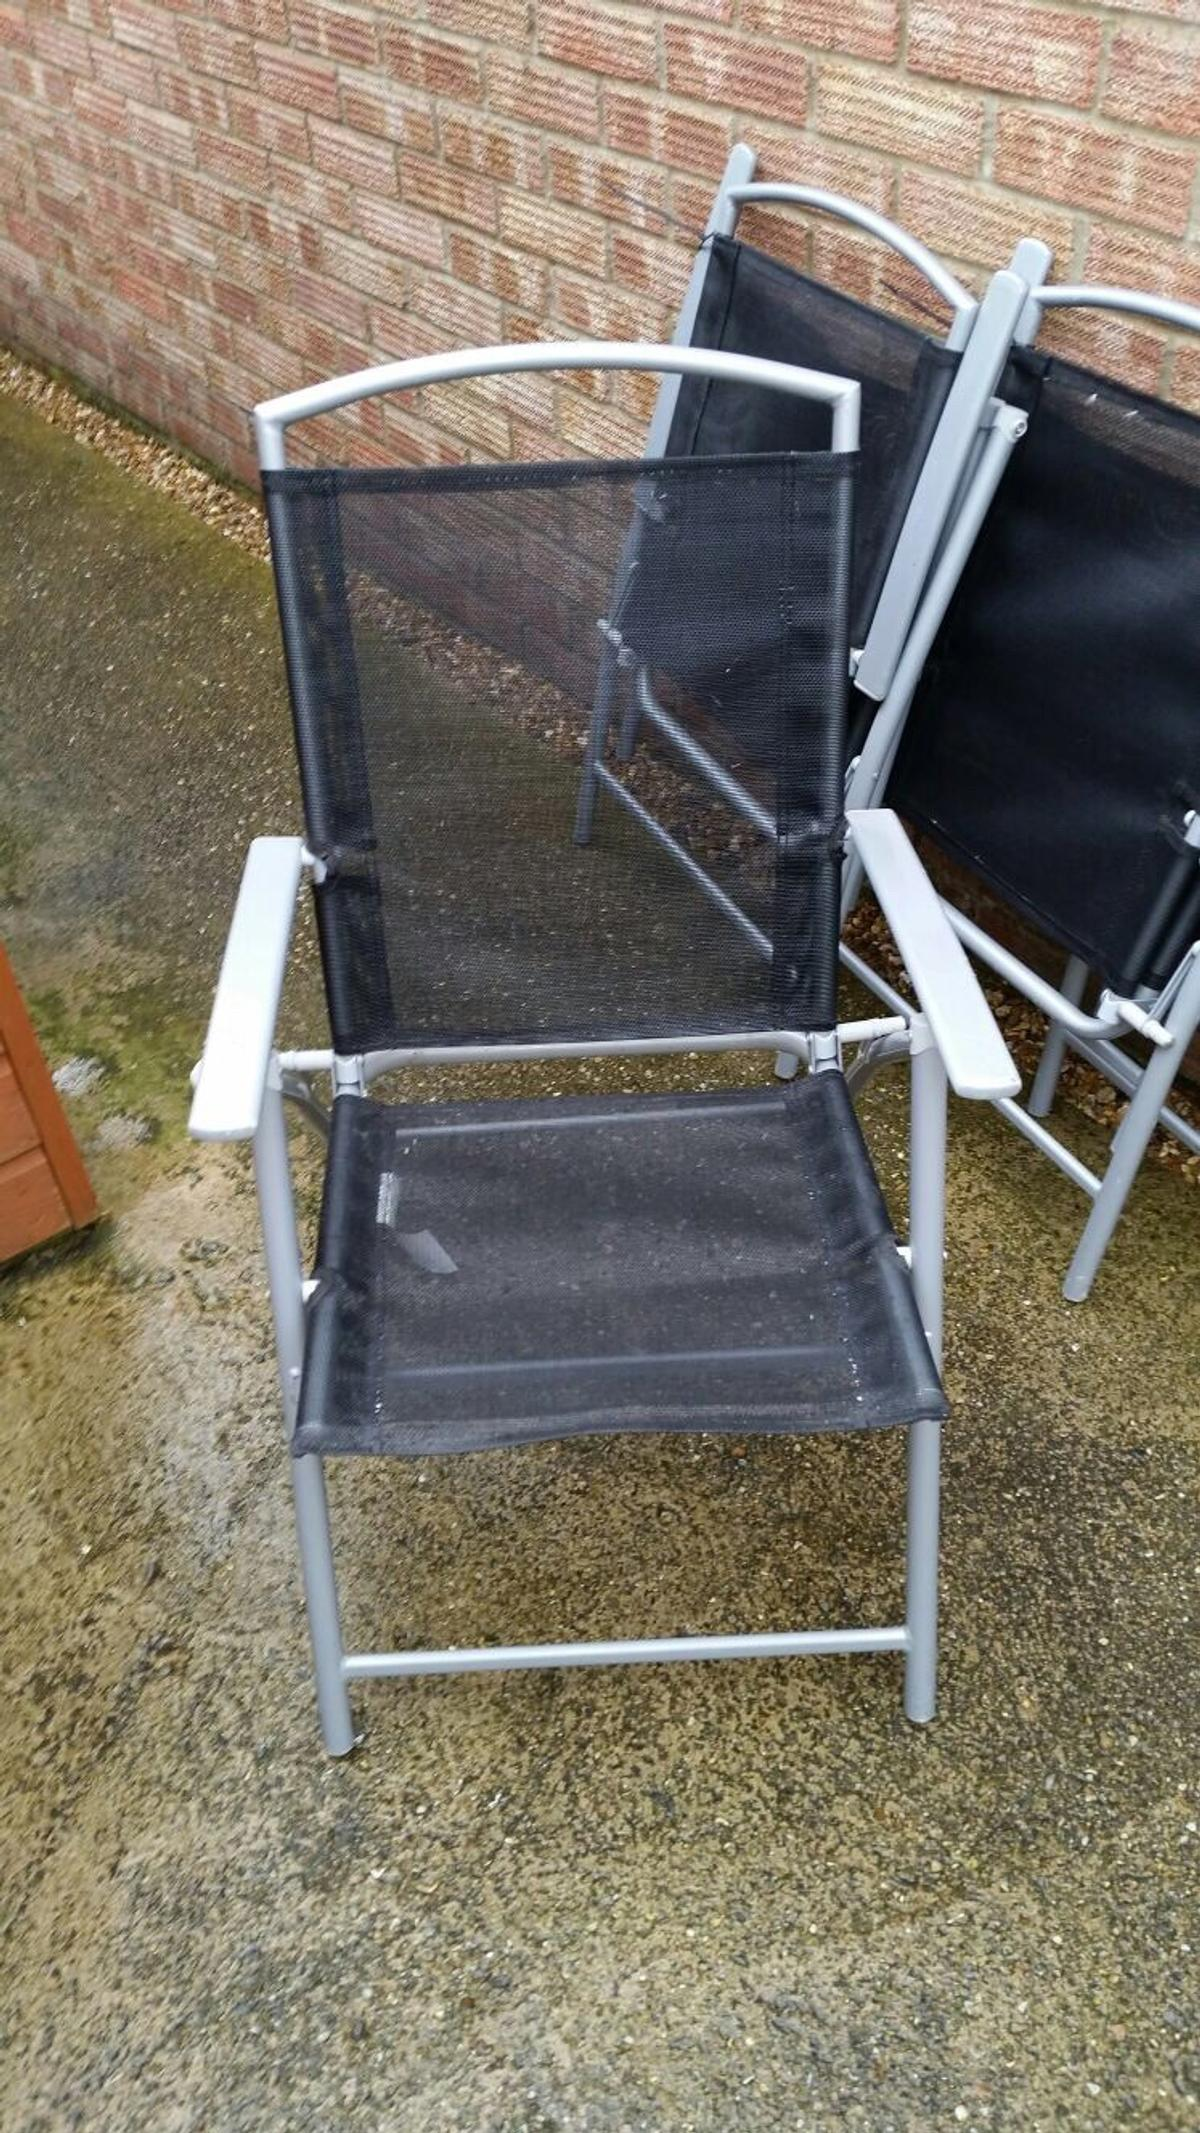 Argos Black n Grey foldable garden chairs x10